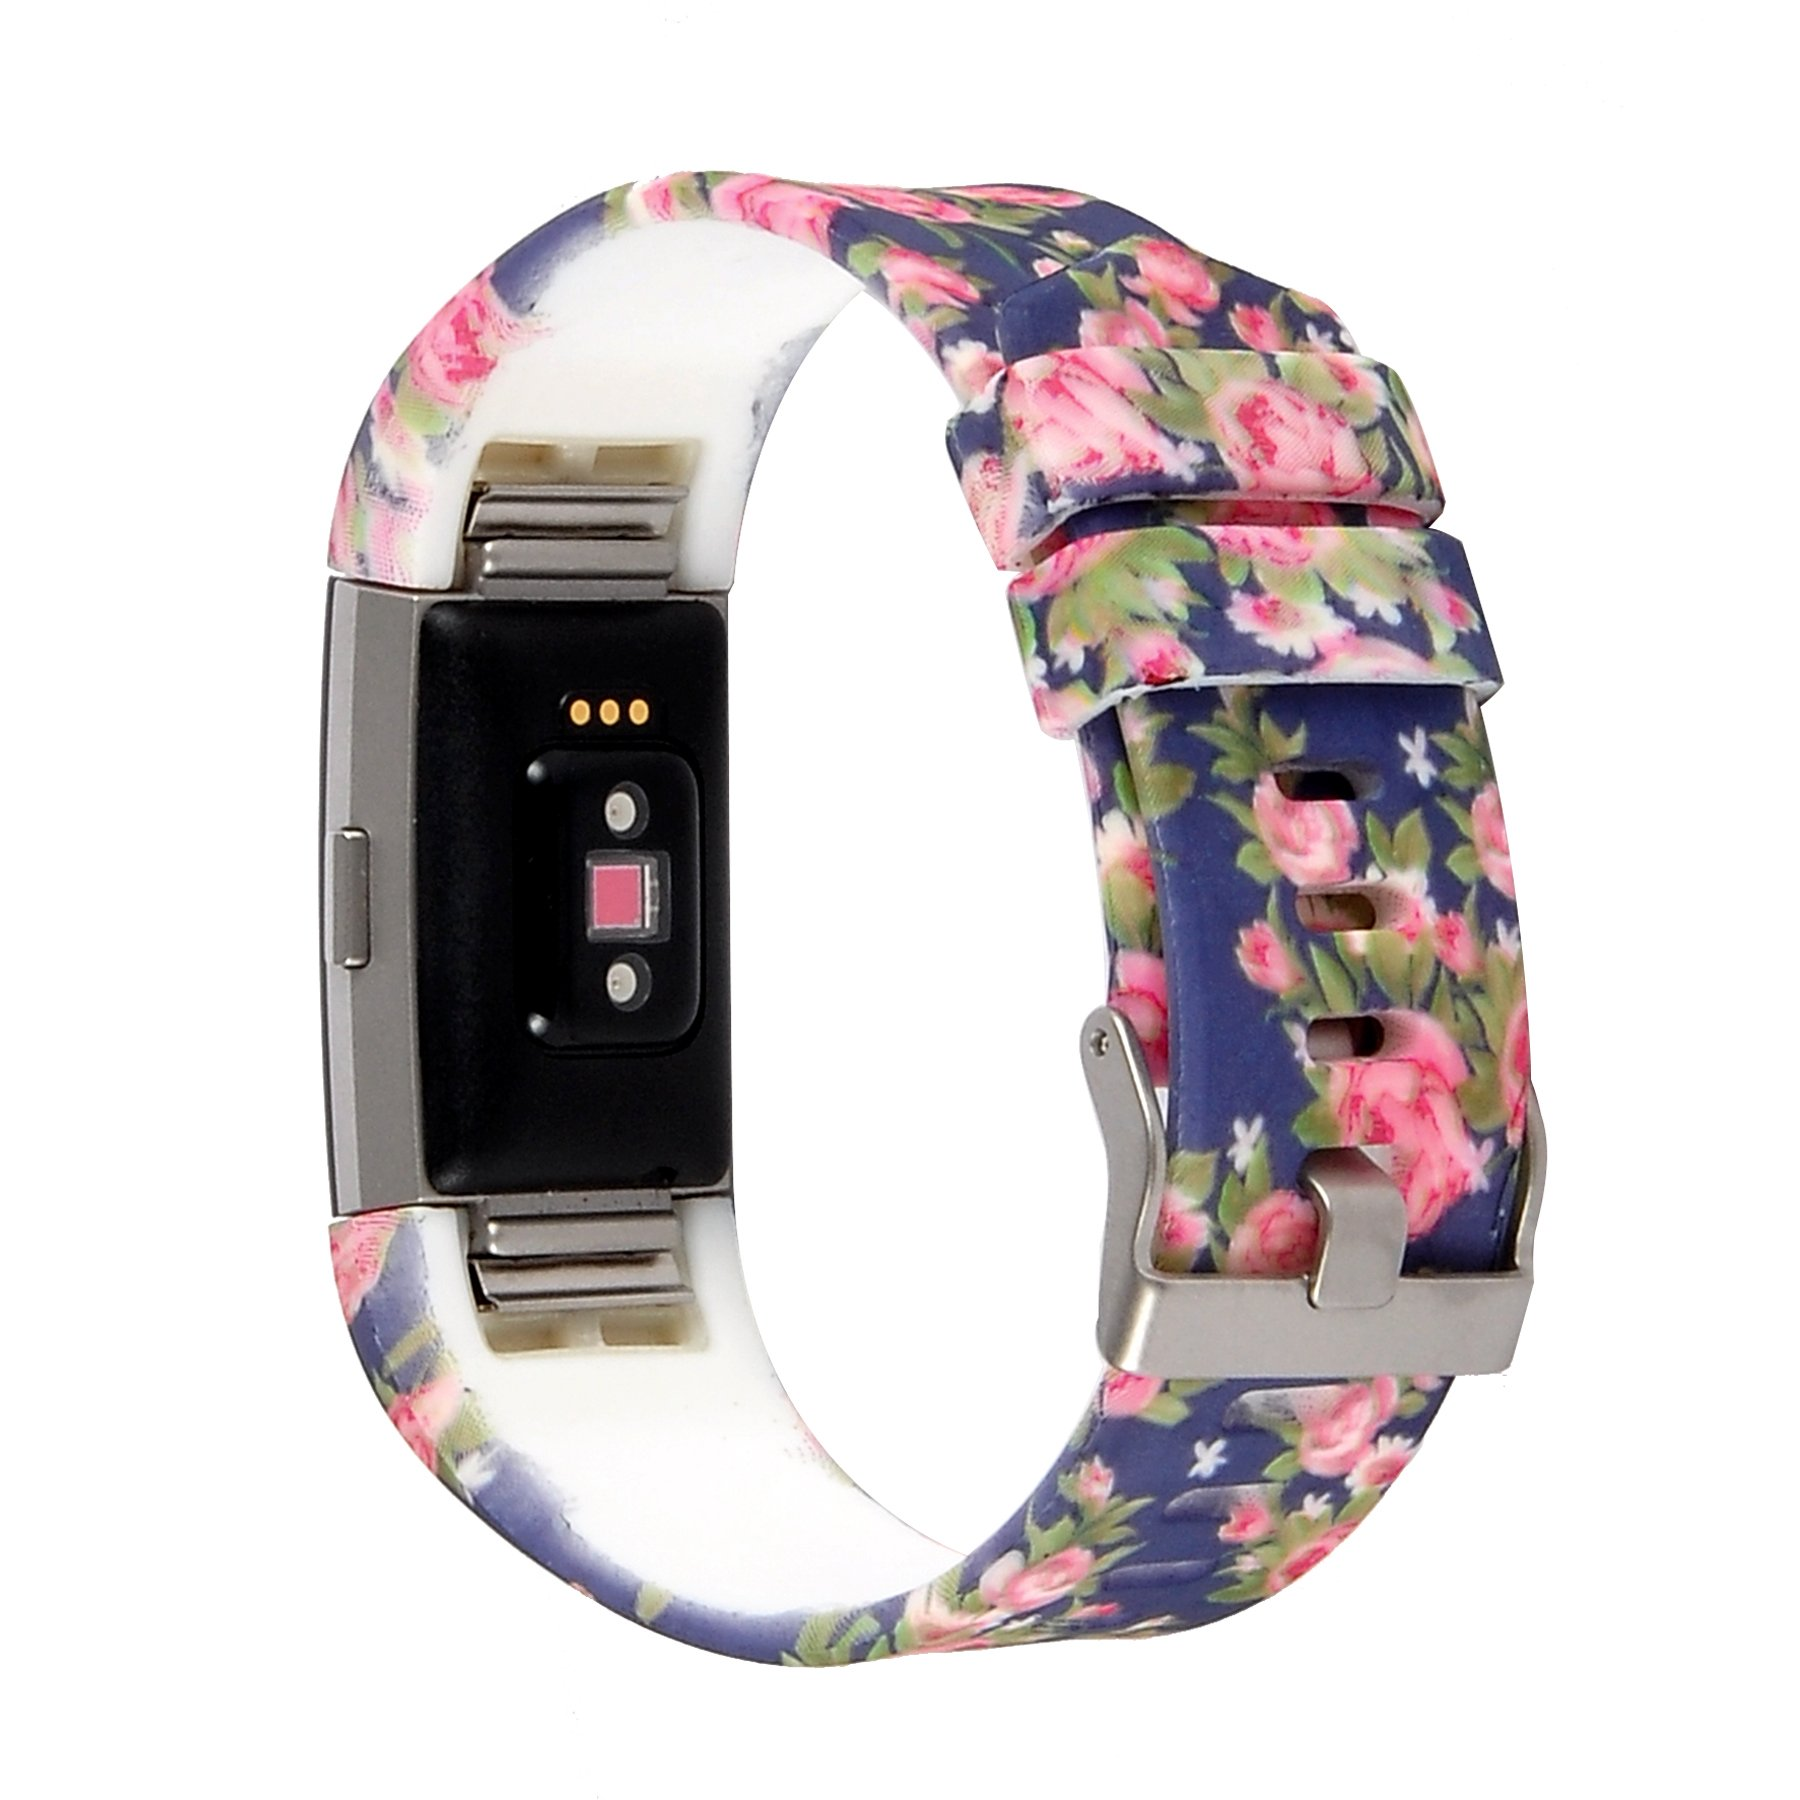 Floral Bands: CLASSIC FLORAL 3PK Large Wristband Band Strap Bracelet For